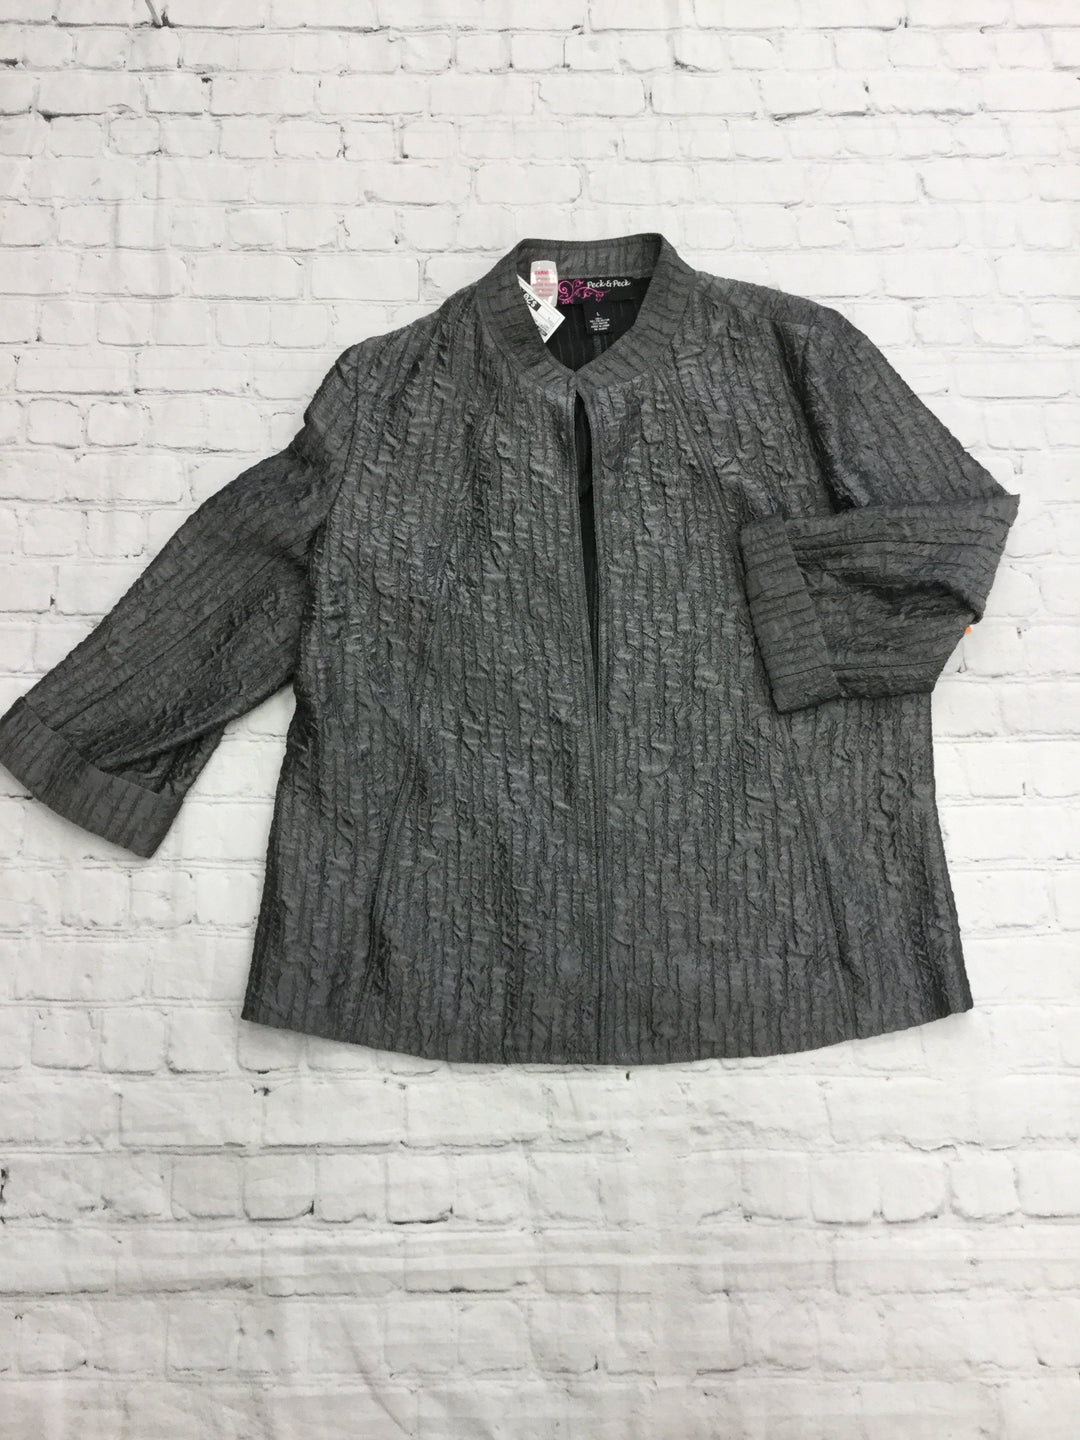 Primary Photo - brand: peck and peck , style: jacket outdoor , color: grey , size: l , sku: 125-4655-4698